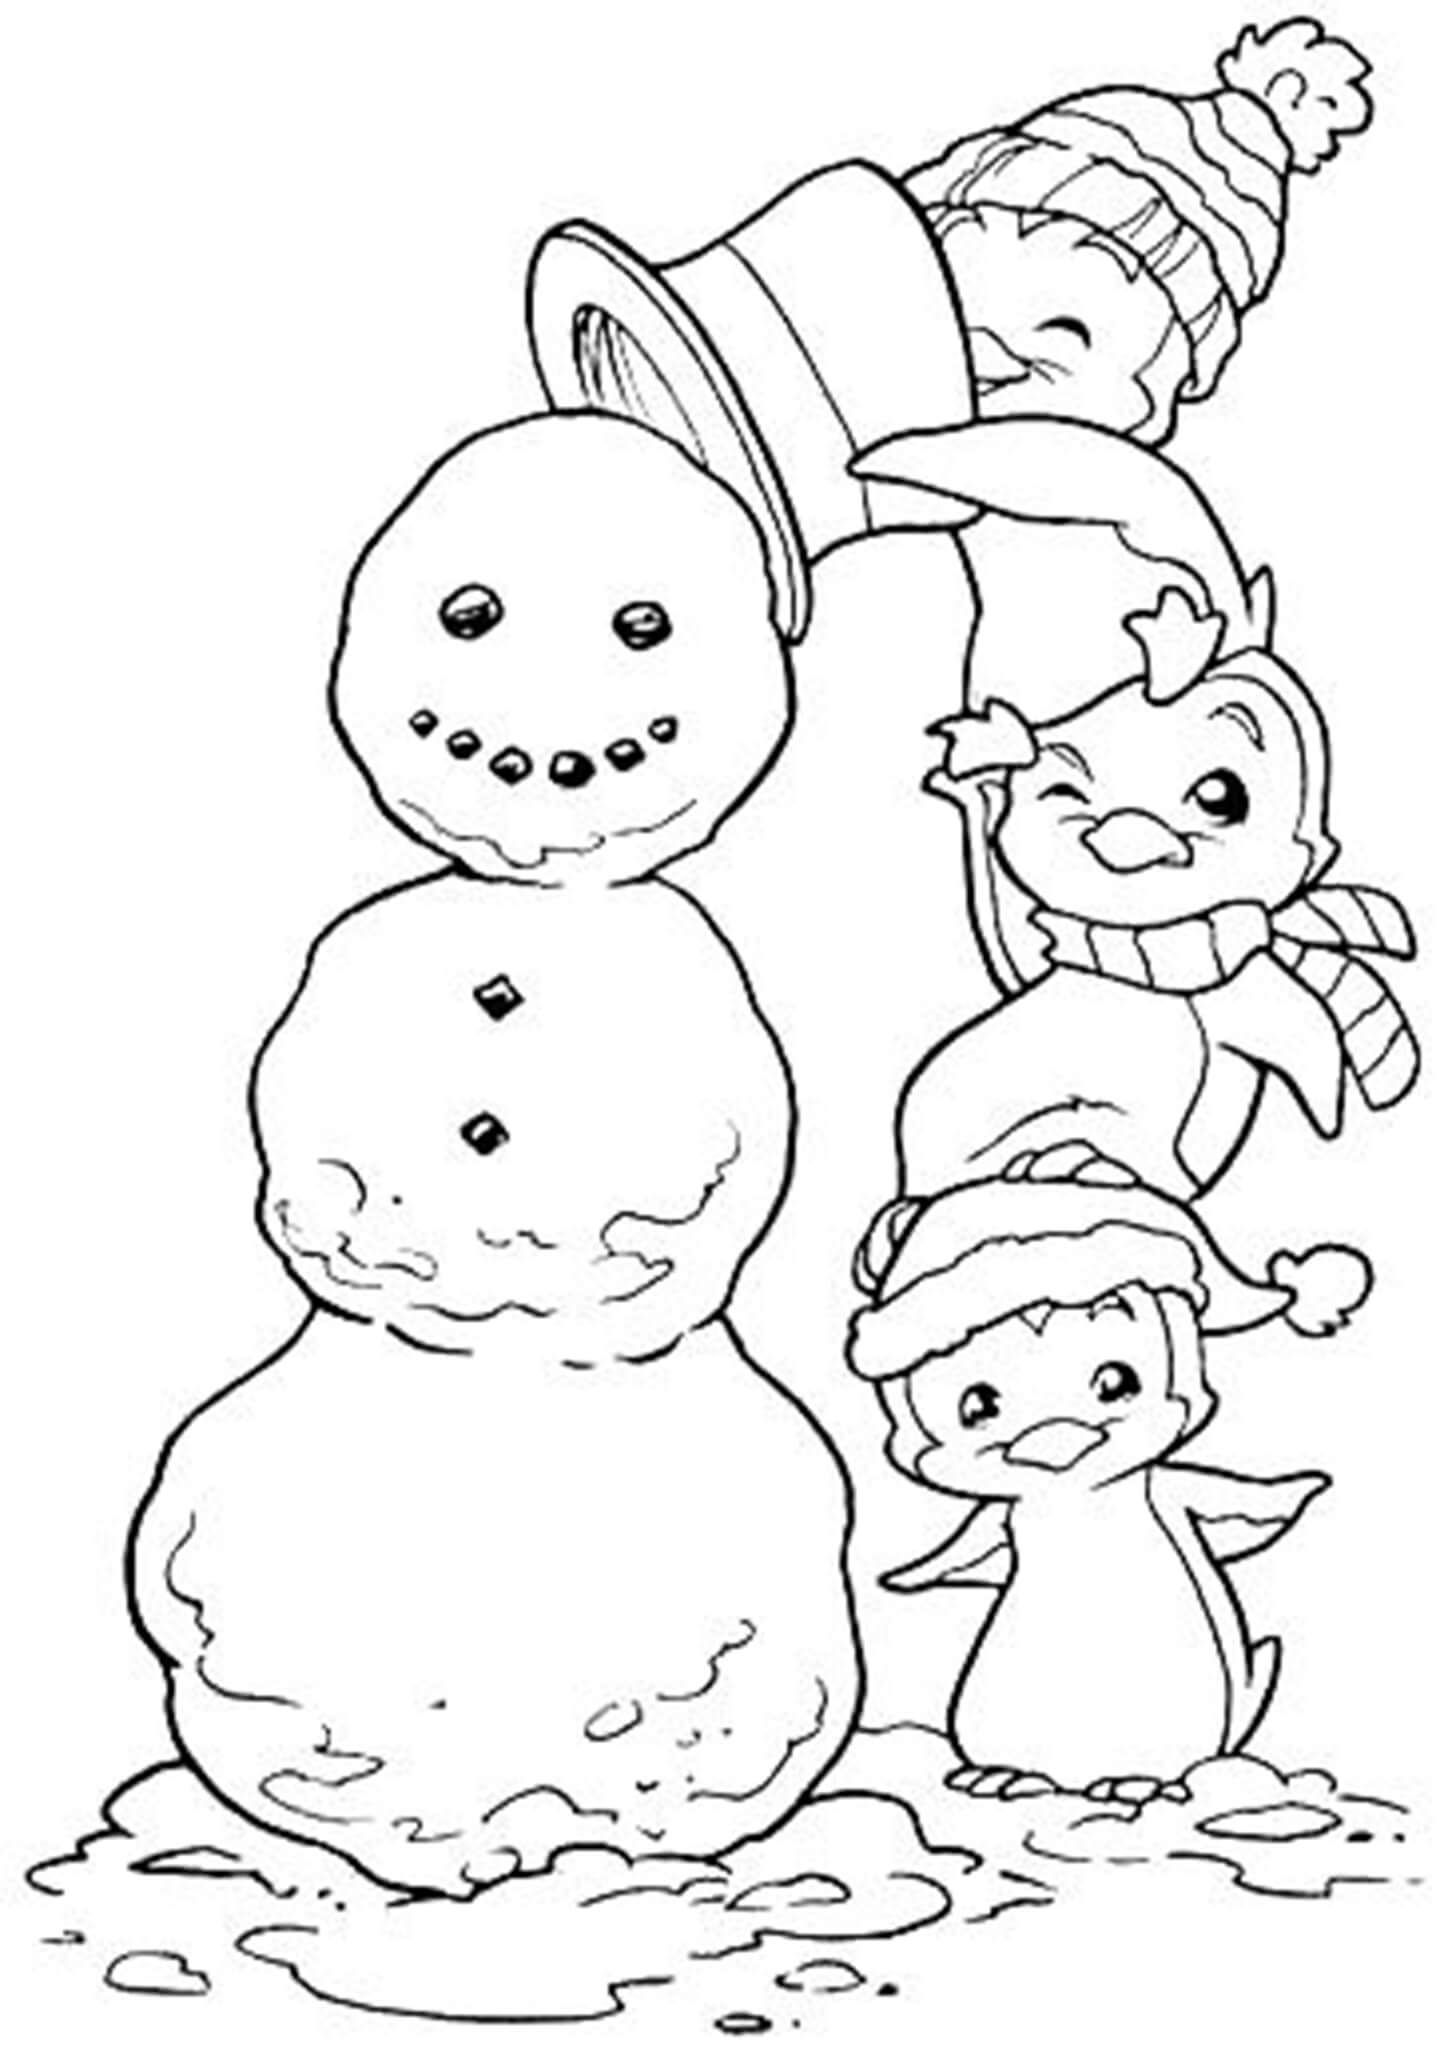 Free Easy To Print Penguin Coloring Pages Penguin Coloring Pages Snowman Coloring Pages Coloring Pages